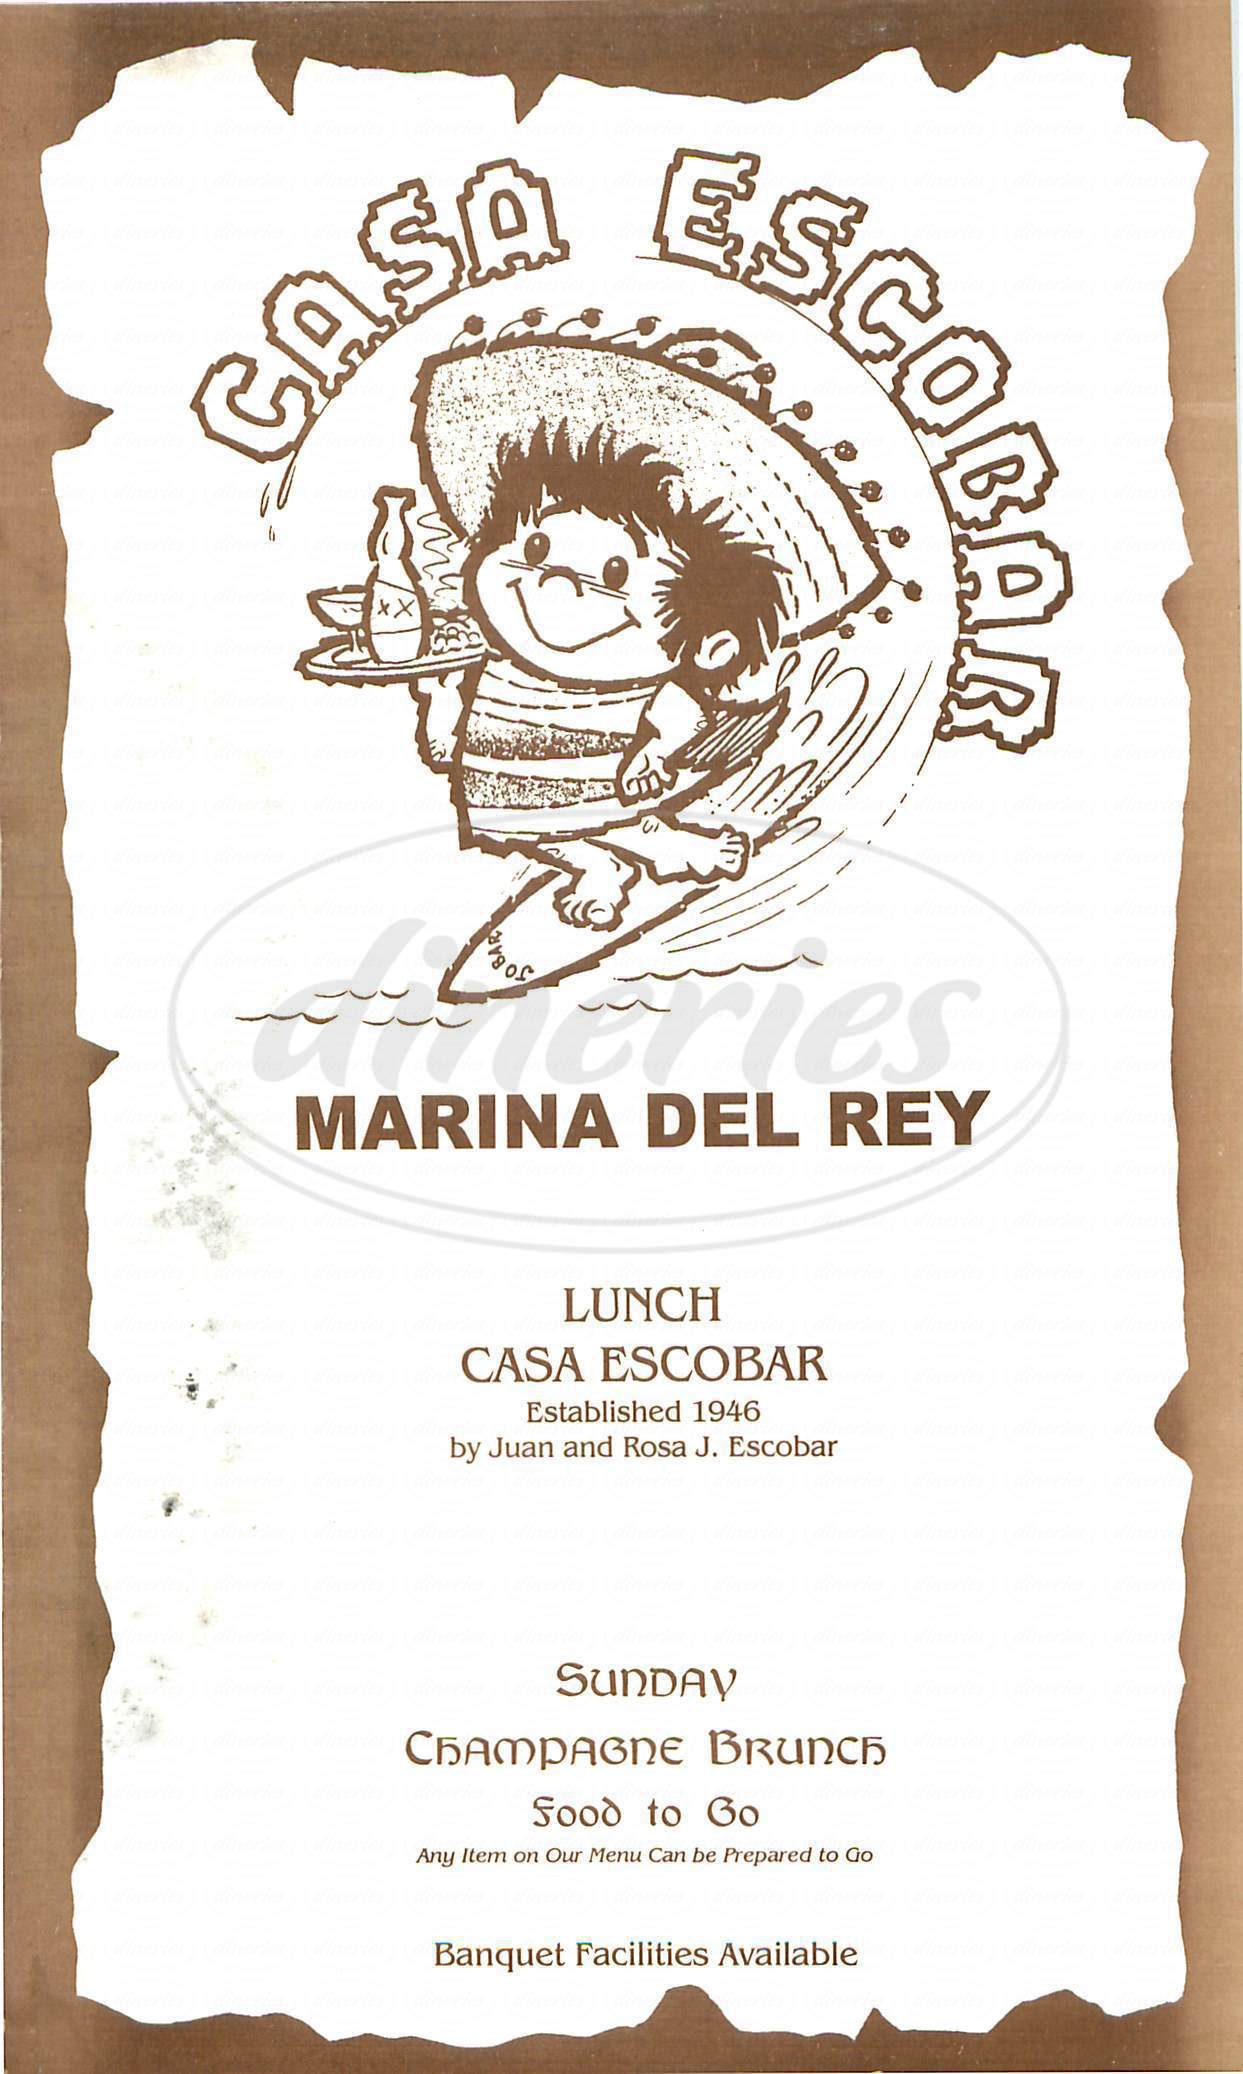 menu for Casa Escobar